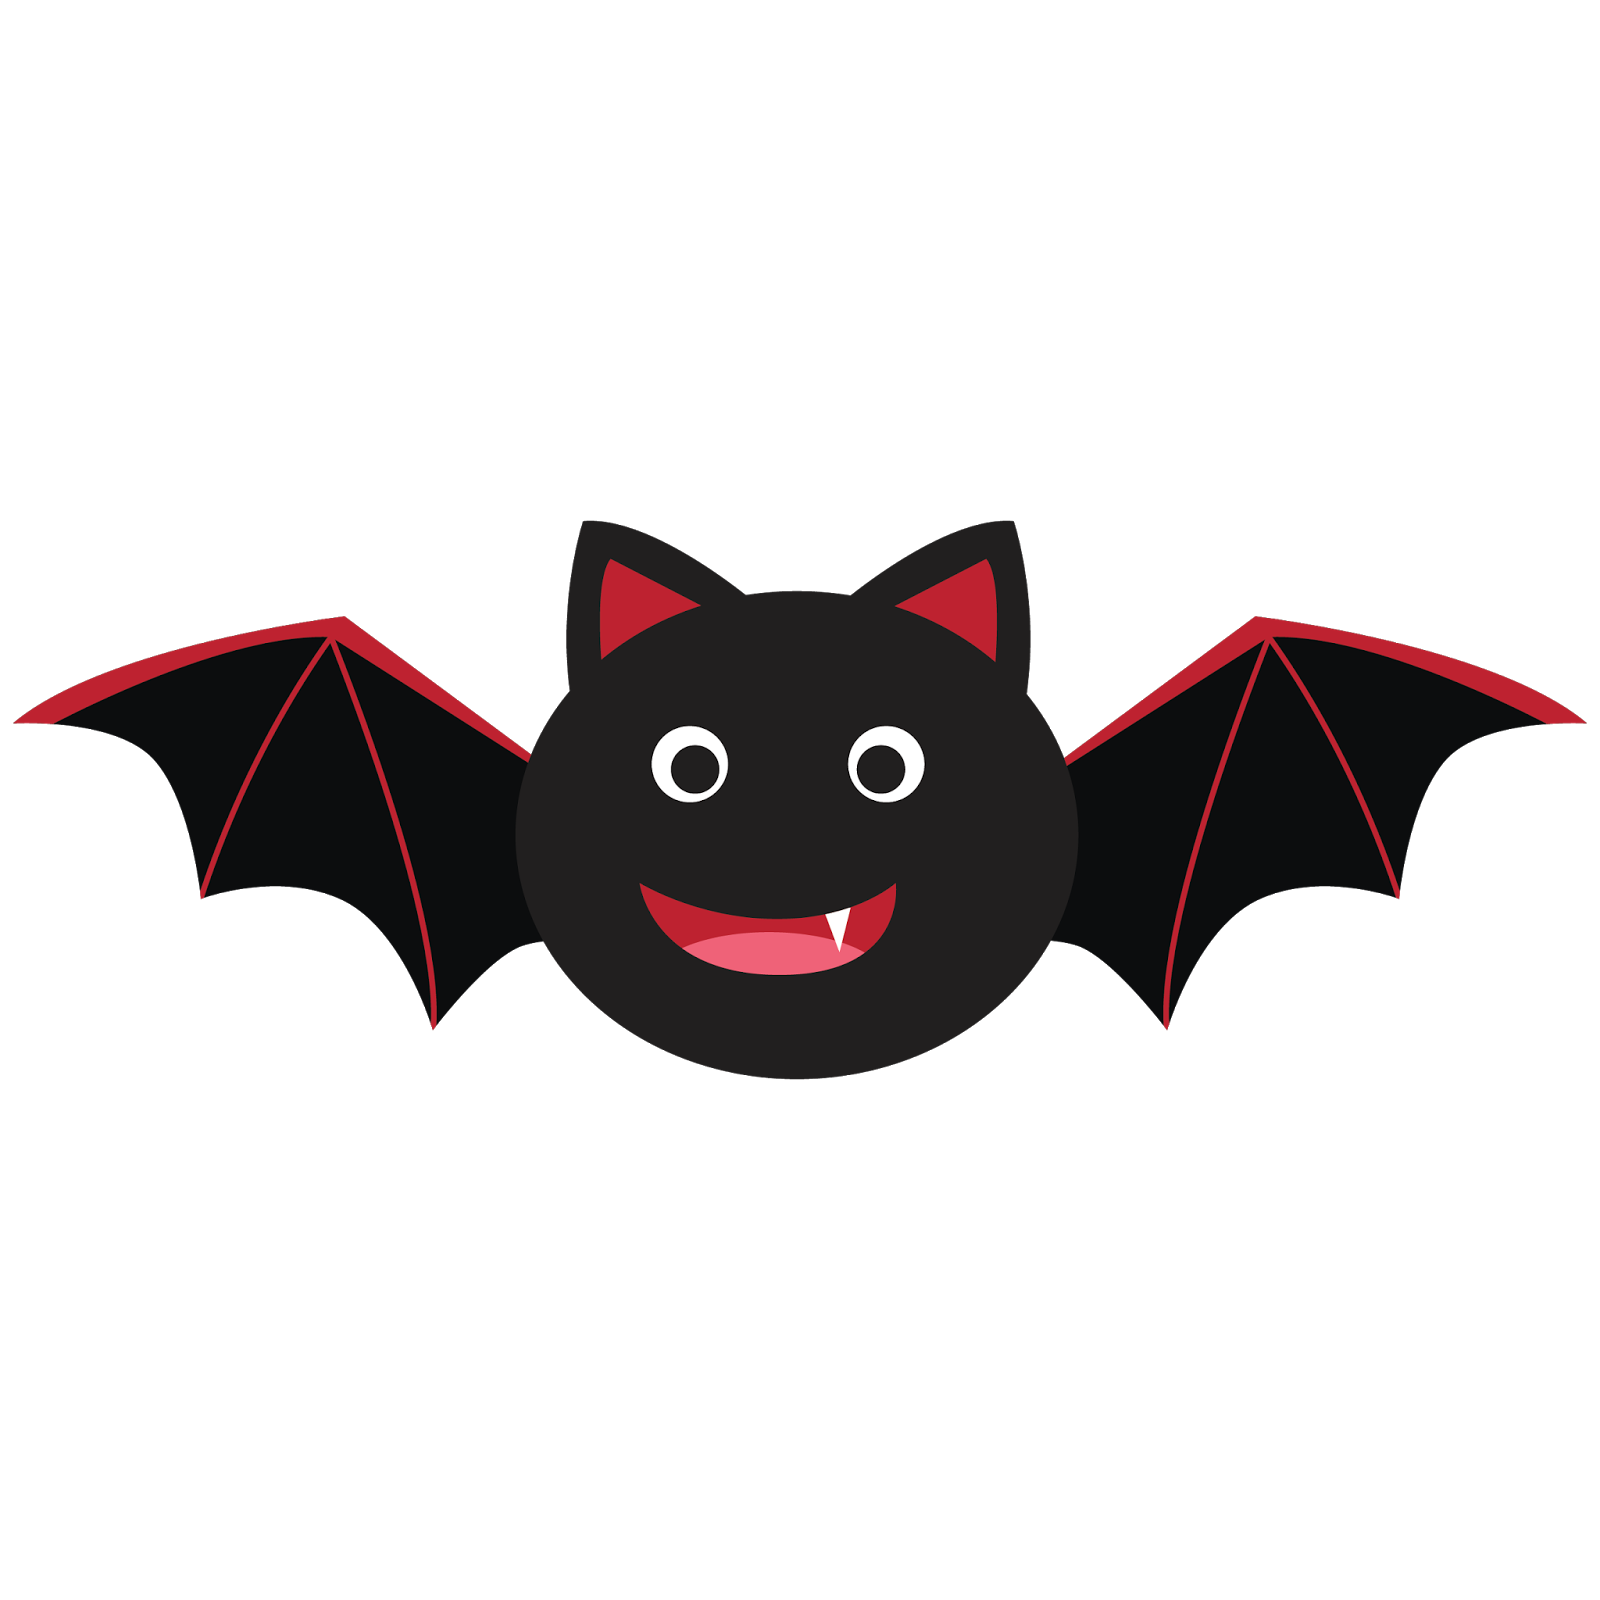 Halloween softball bats clipart clip freeuse library 28+ Collection of Bats Clipart Halloween | High quality, free ... clip freeuse library